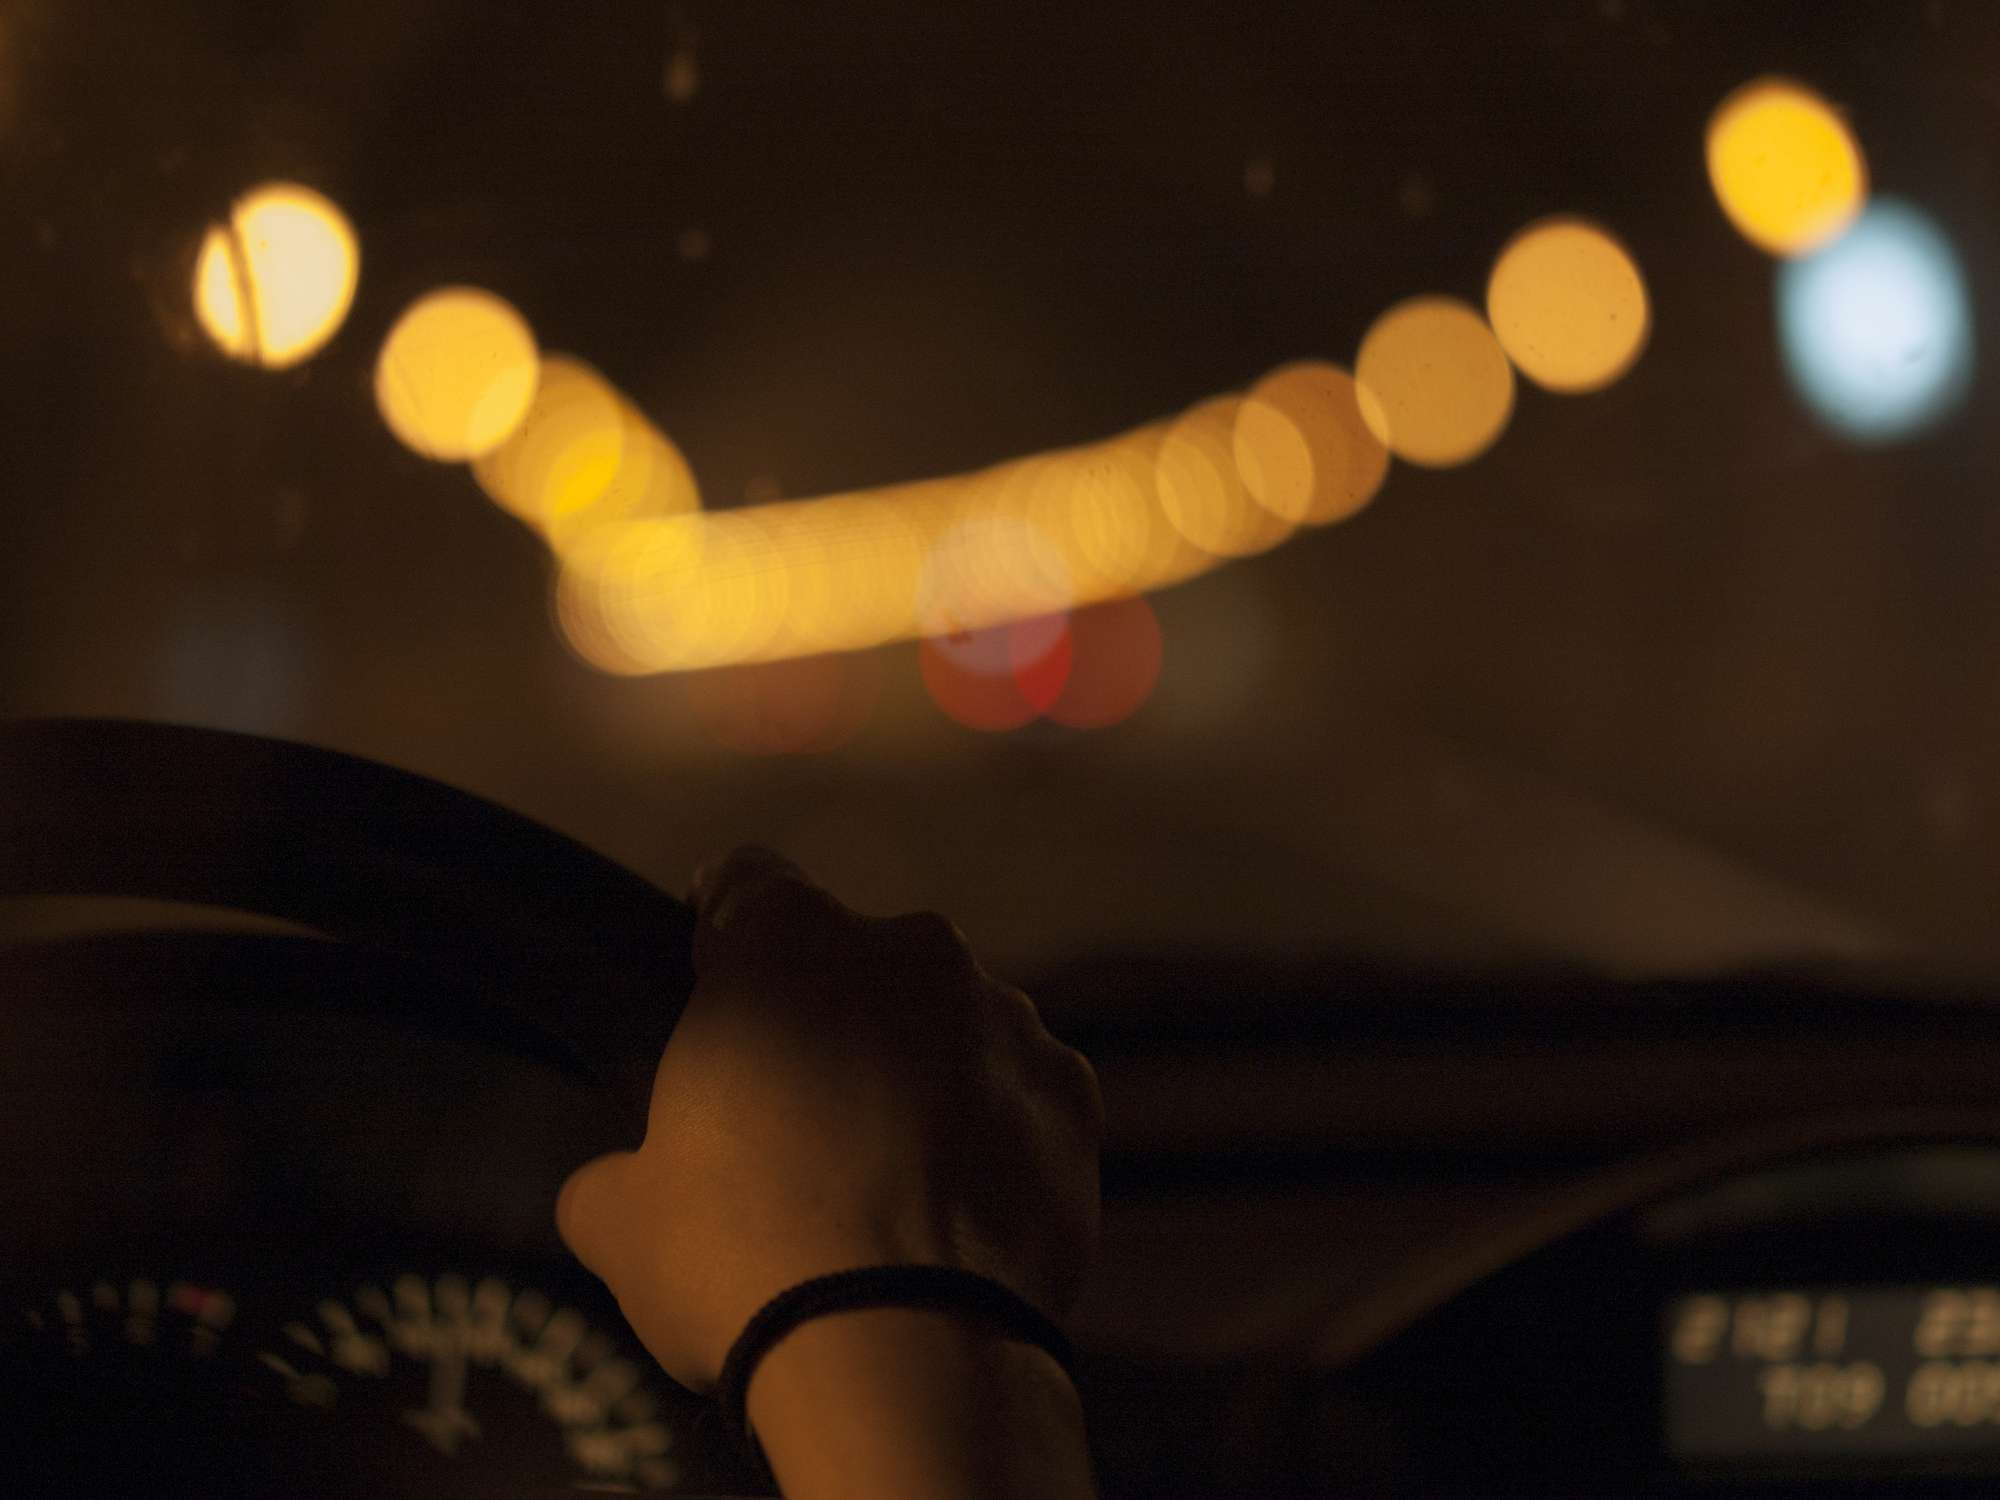 Woman driving a car with dirty windshield at night inside a tunnel. Detail of hand on the wheel in the dark, surrounded by colored and blur lights